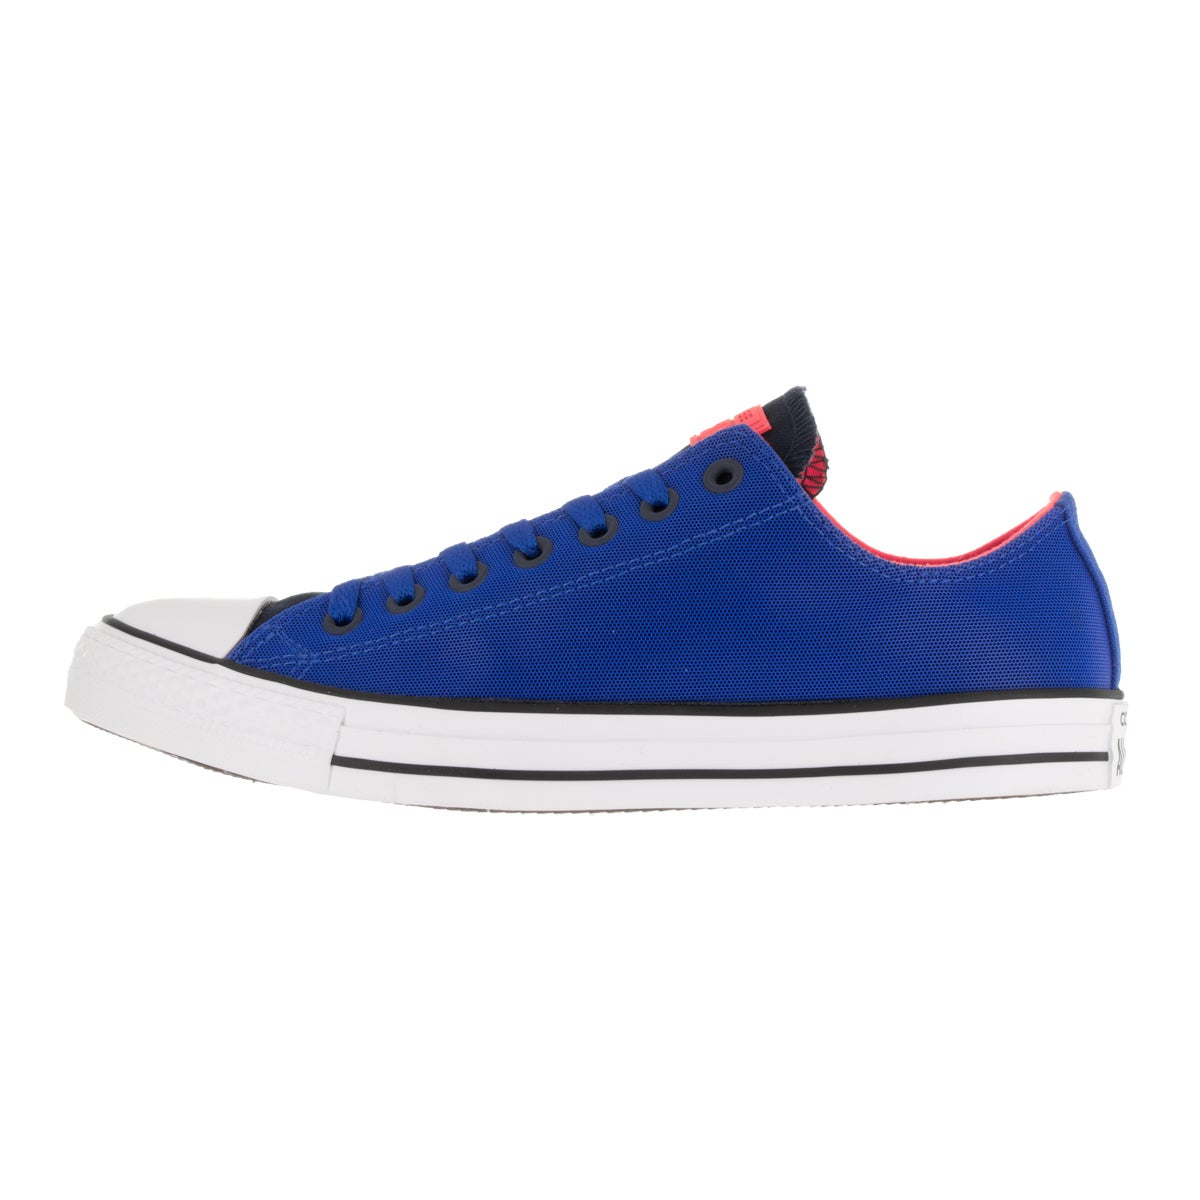 7a4d1facc36a Shop Converse Unisex Chuck Taylor All Star Ox Obsidian Blue Basketball Shoe  - Free Shipping Today - Overstock.com - 13395275